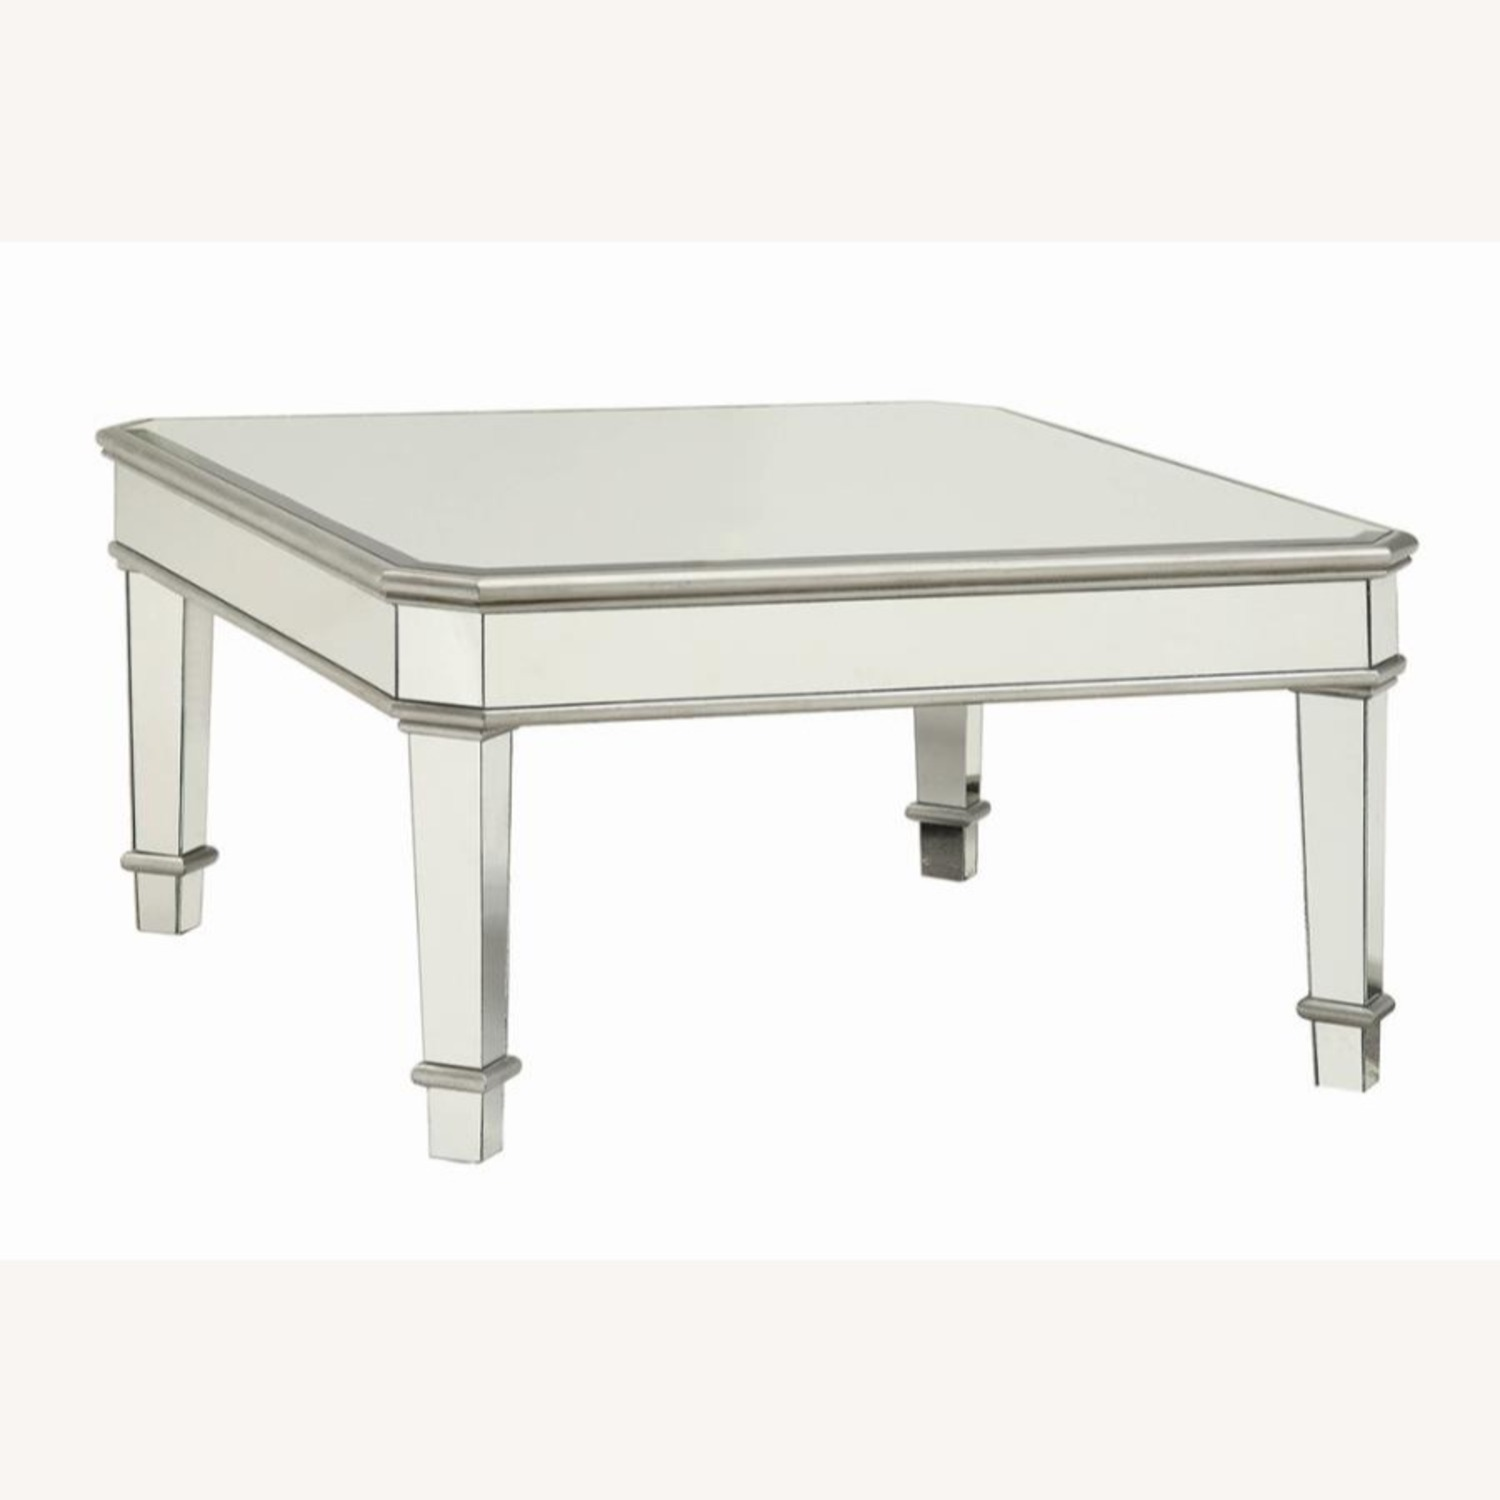 Coffee Table In Silver W/ Mirror Lined Surfaces - image-0